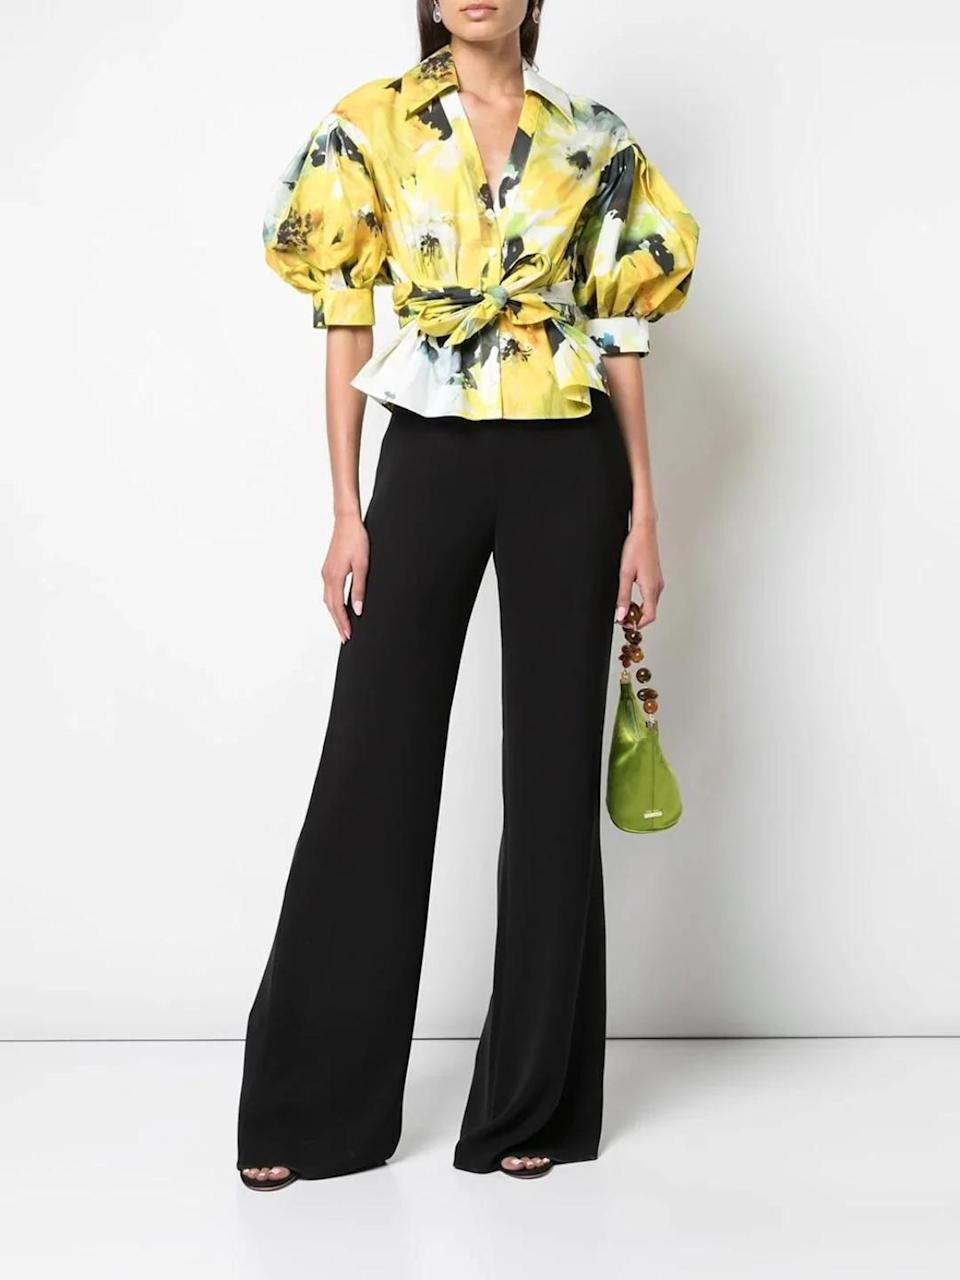 """<p><strong>Marchesa</strong></p><p>marchesa.com</p><p><strong>$895.00</strong></p><p><a href=""""https://www.marchesa.com/products/m26415a"""" rel=""""nofollow noopener"""" target=""""_blank"""" data-ylk=""""slk:Shop Now"""" class=""""link rapid-noclick-resp"""">Shop Now</a></p><p>I know. I know. Marchesa is expensive as hell. But the <strong>50 percent off discount using the code SUMMERSALE</strong> might be the biggest deal you'll ever come across on the red carpet-worthy brand. You're welcome.</p>"""